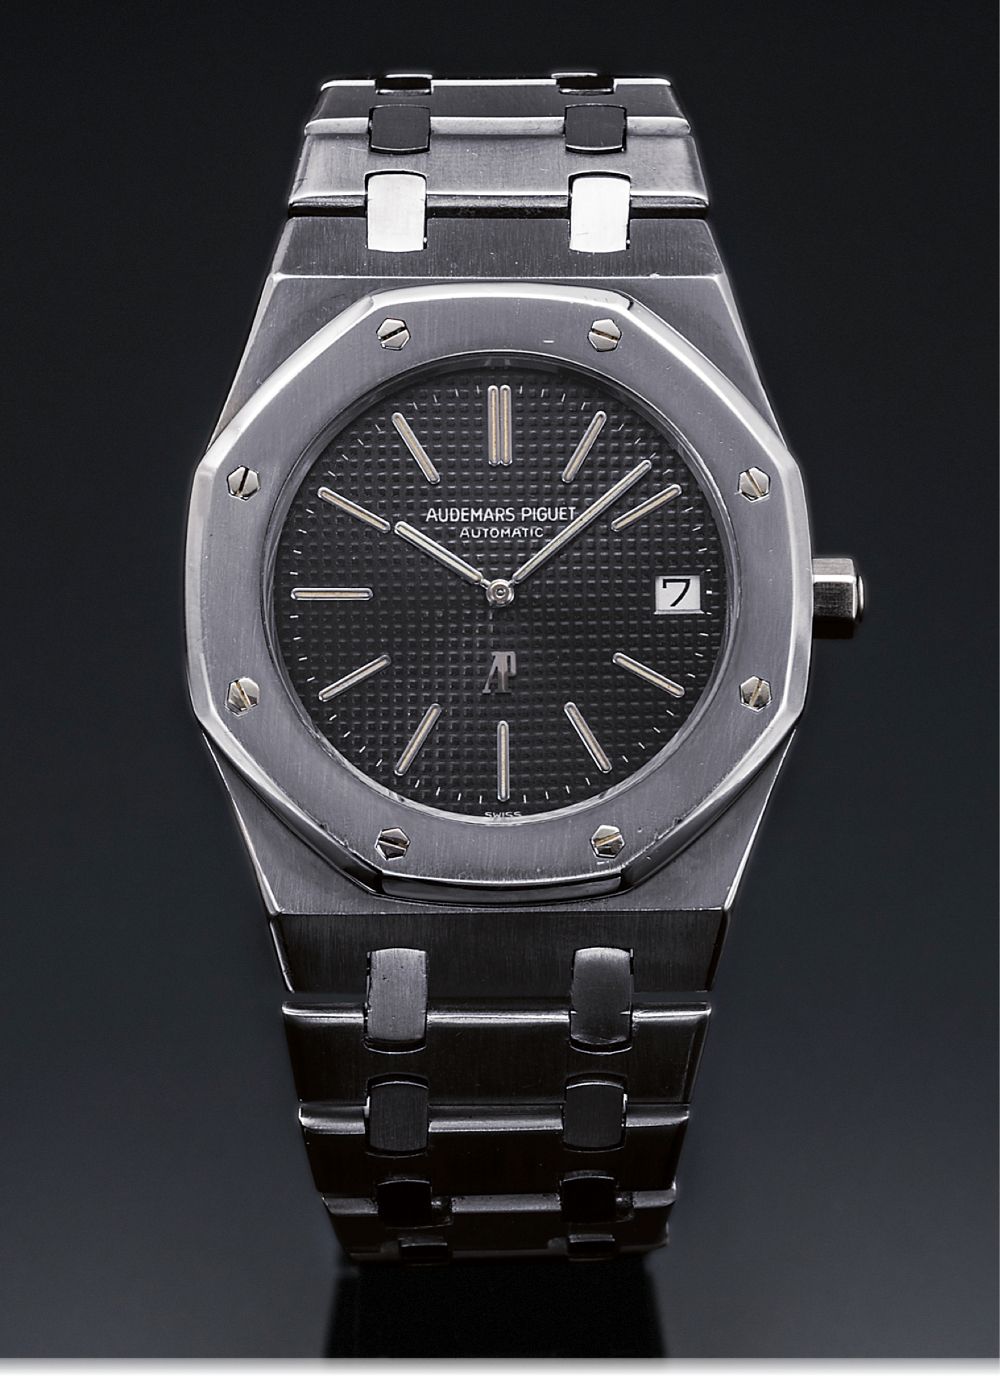 The Audemars Piguet Royal Oak. Photo Courtesy of Antiqourum.